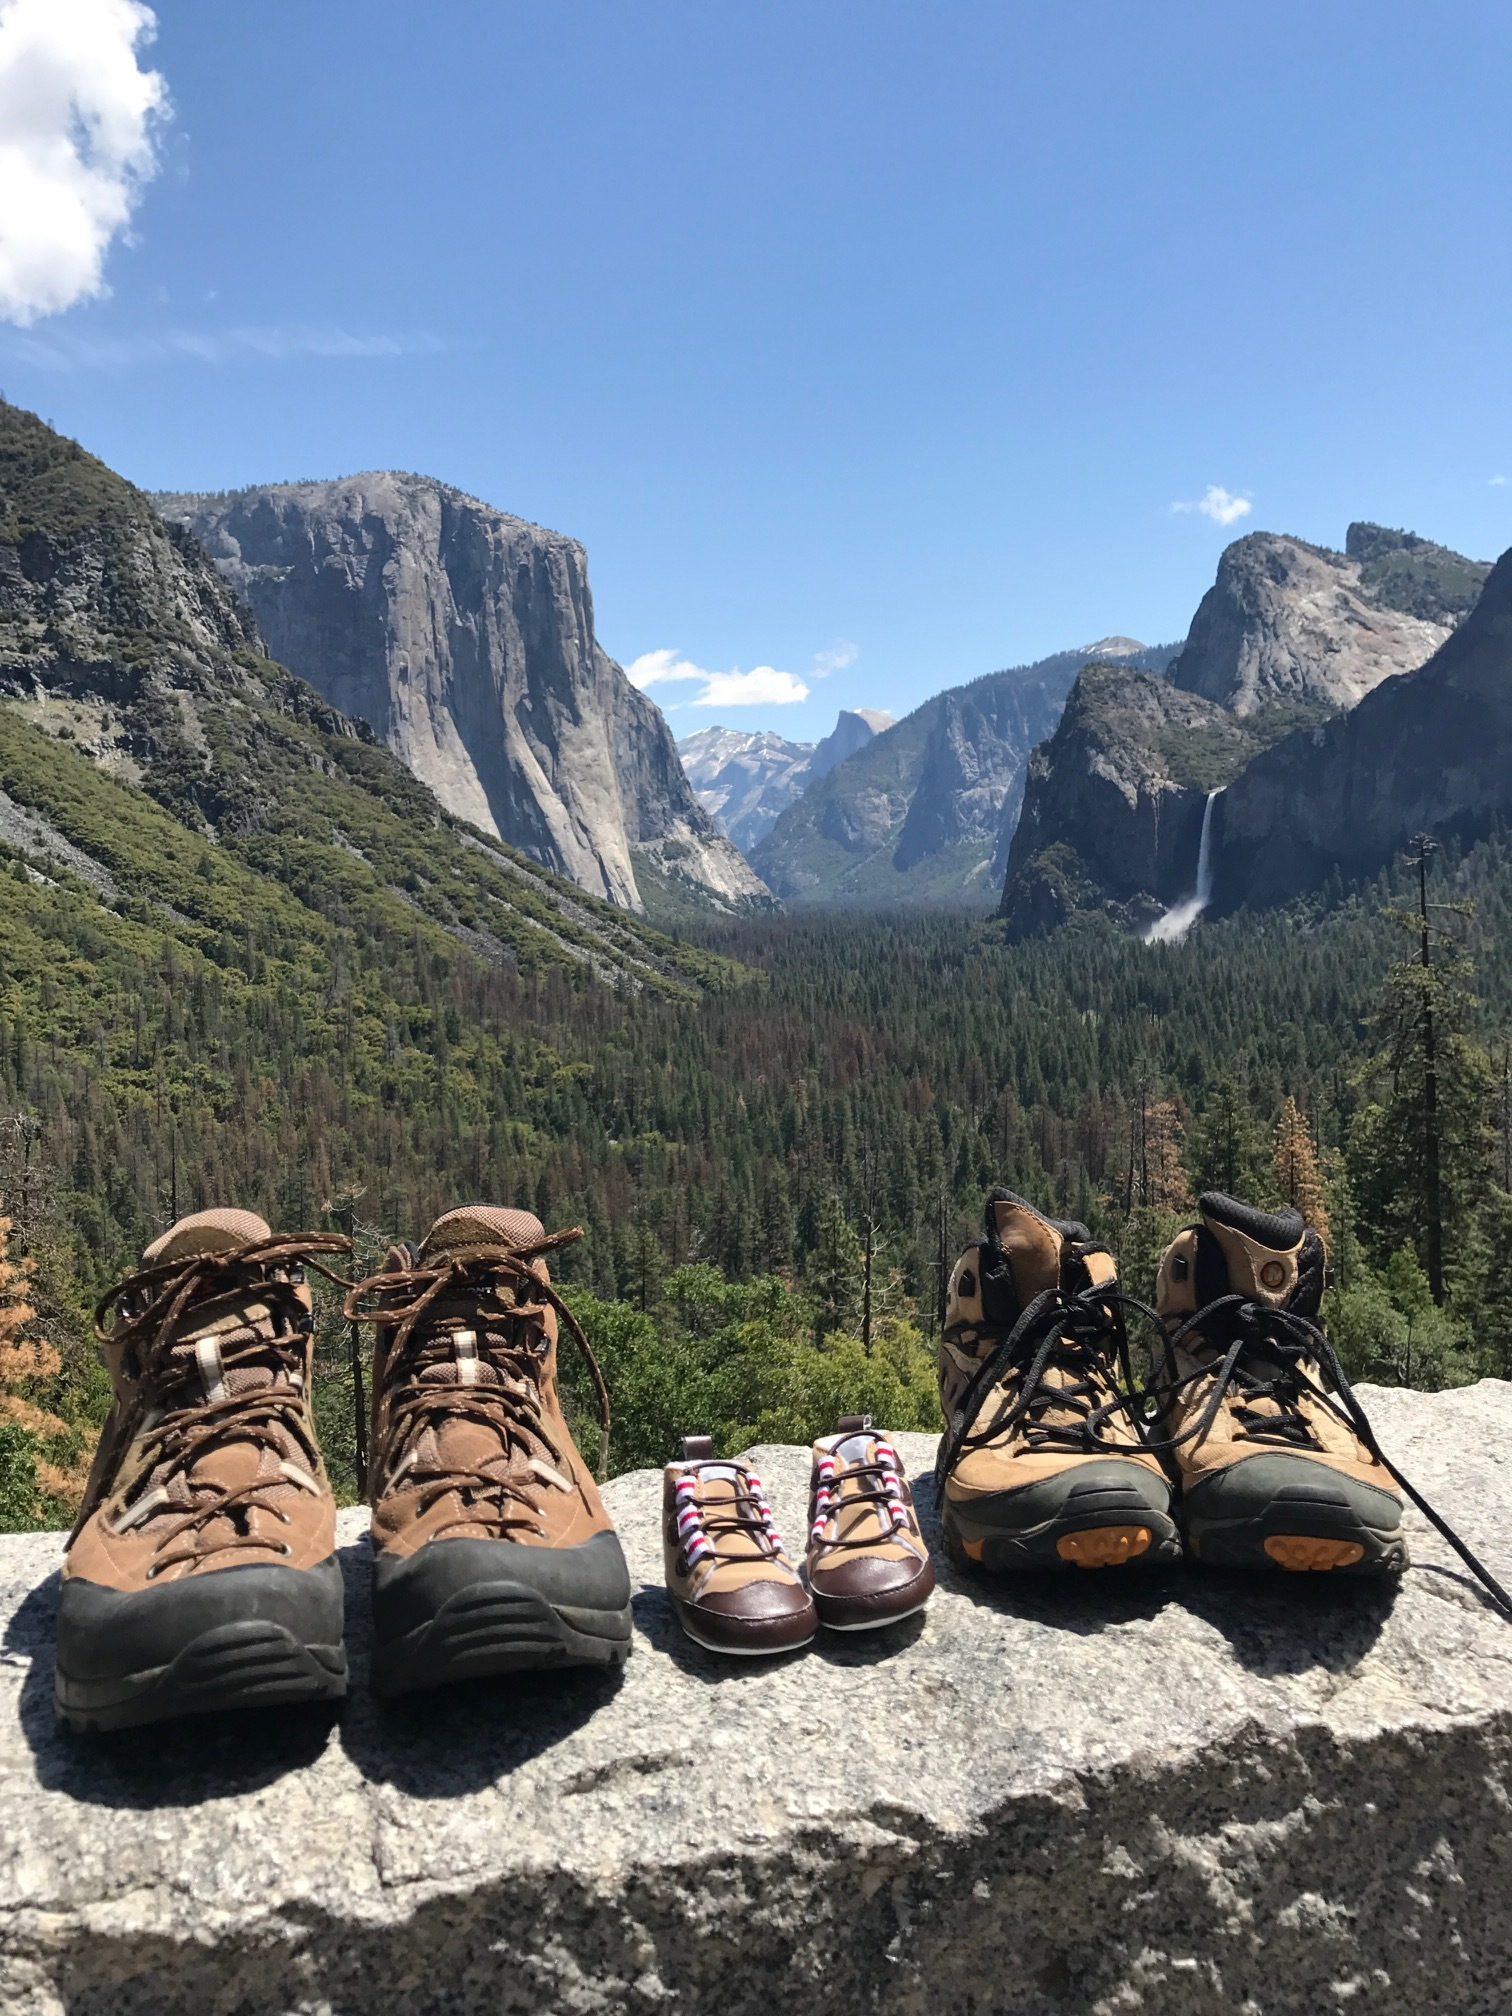 #hellobabyJvaldez ~ Spring was our last season to experience in @yosemitenps together and this time we're not alone! Baby J Valdez is due to join the world December 1st and we couldn't be more excited!!! Gender to be determined soon and names are secret until birth.